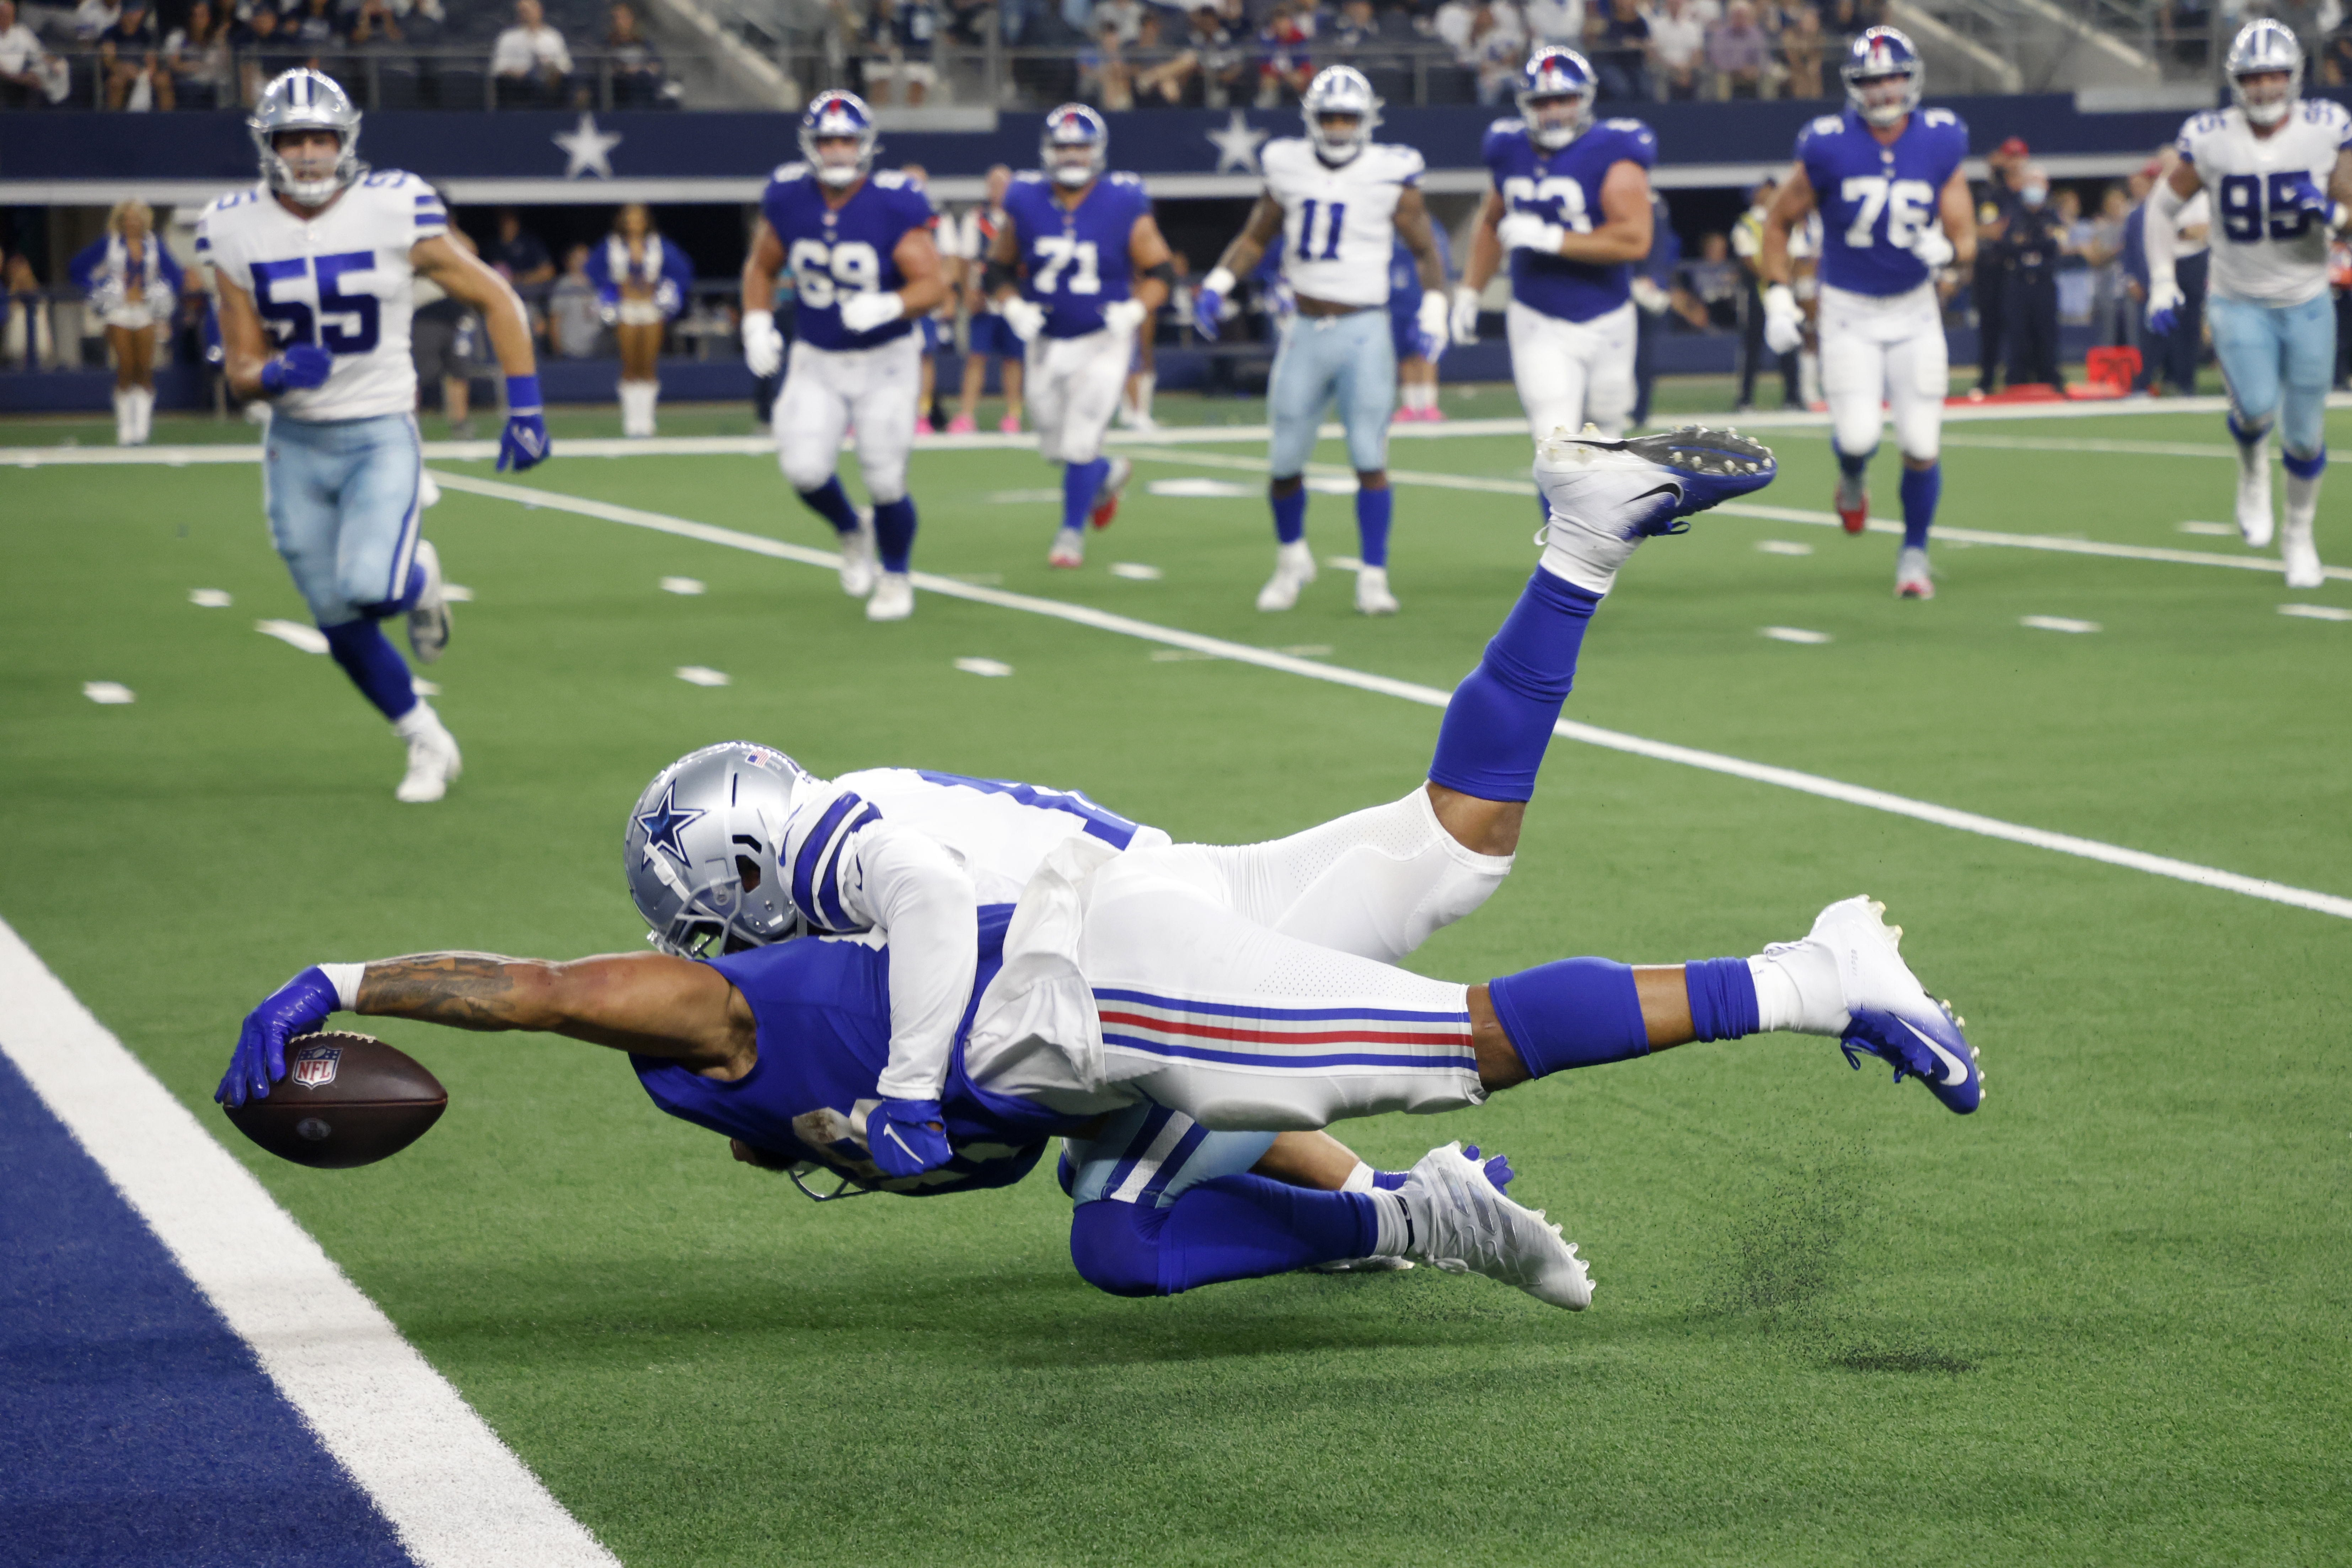 New York Giants running back Devontae Booker stretches to reach the end zone for a touchdown.